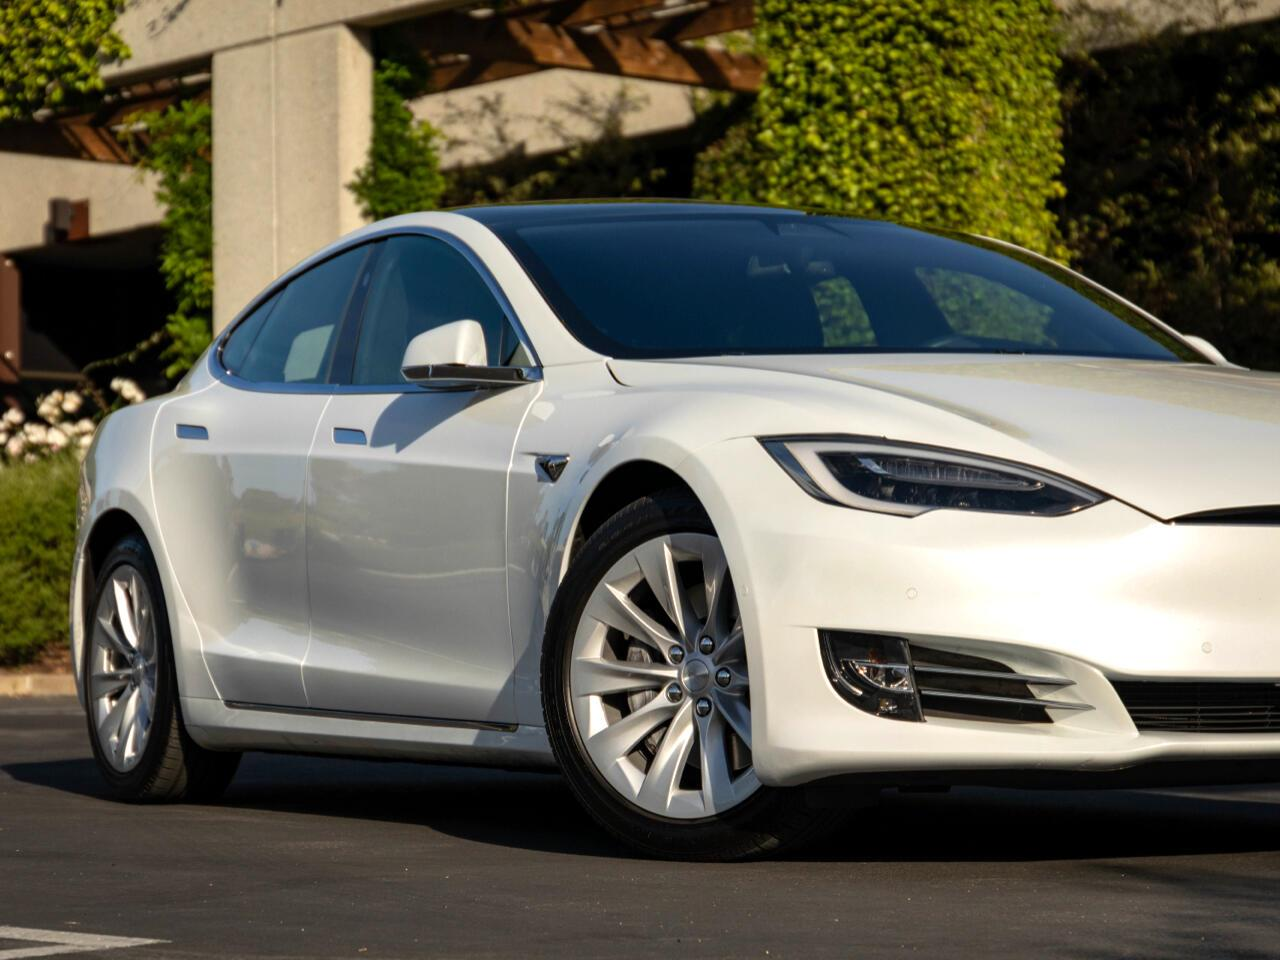 2017 Tesla Model S (CC-1344902) for sale in Marina Del Rey, California